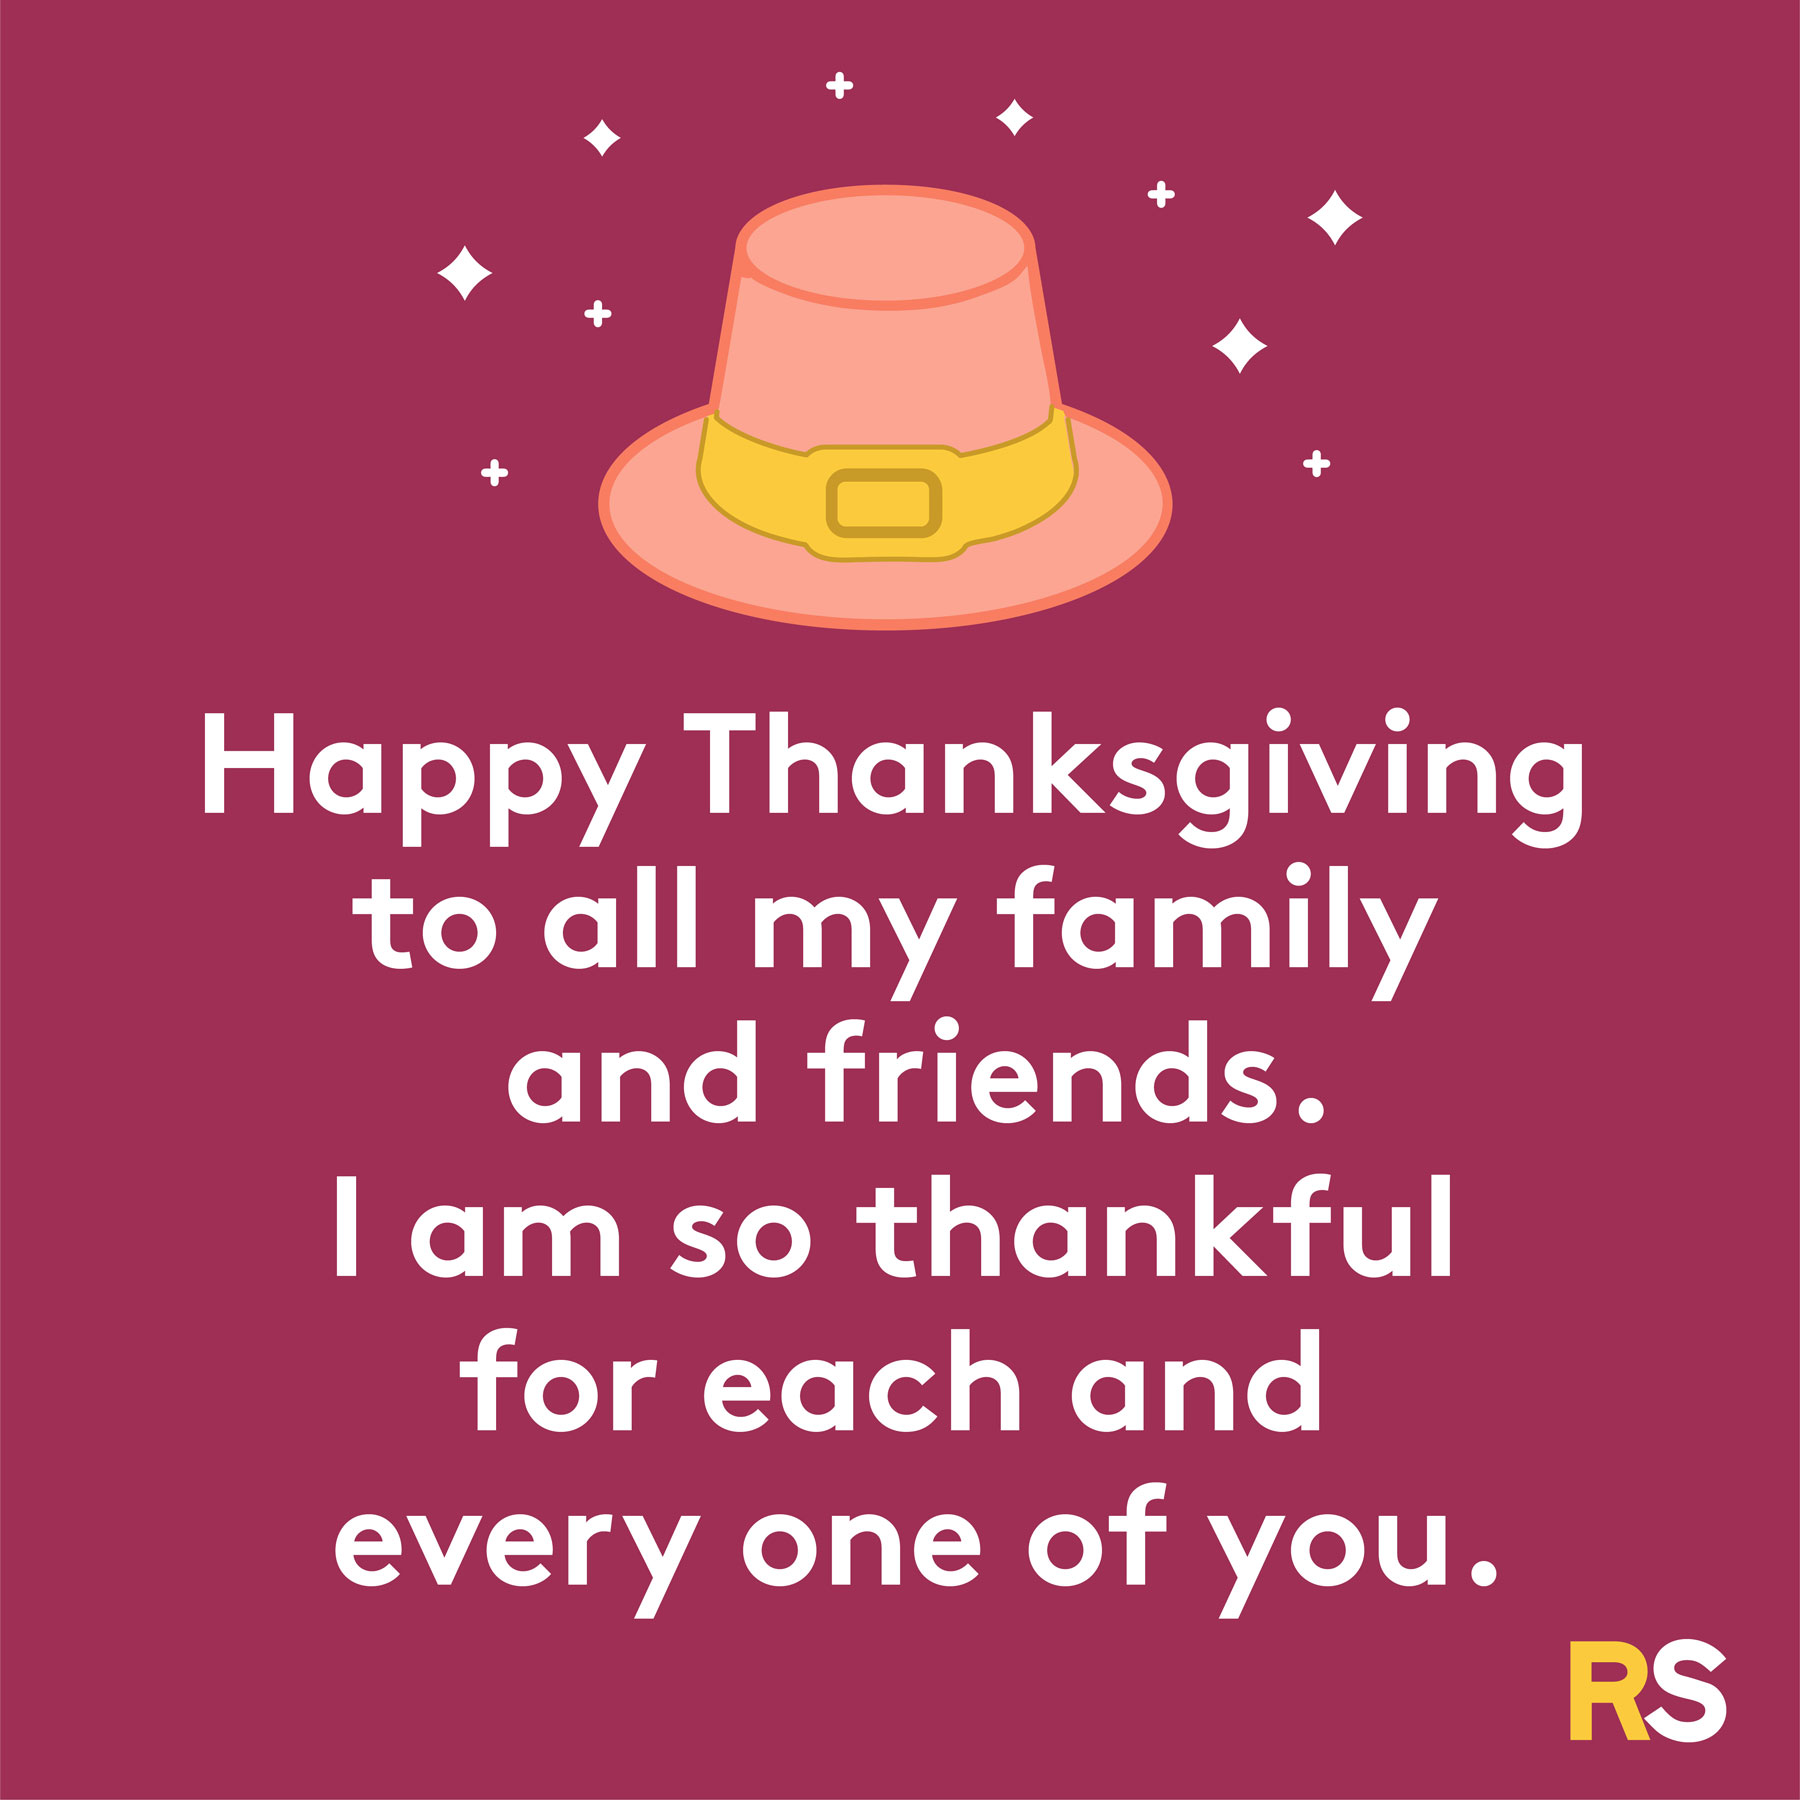 Thanksgiving Wishes 46 Messages And Greetings To Share Real Simple